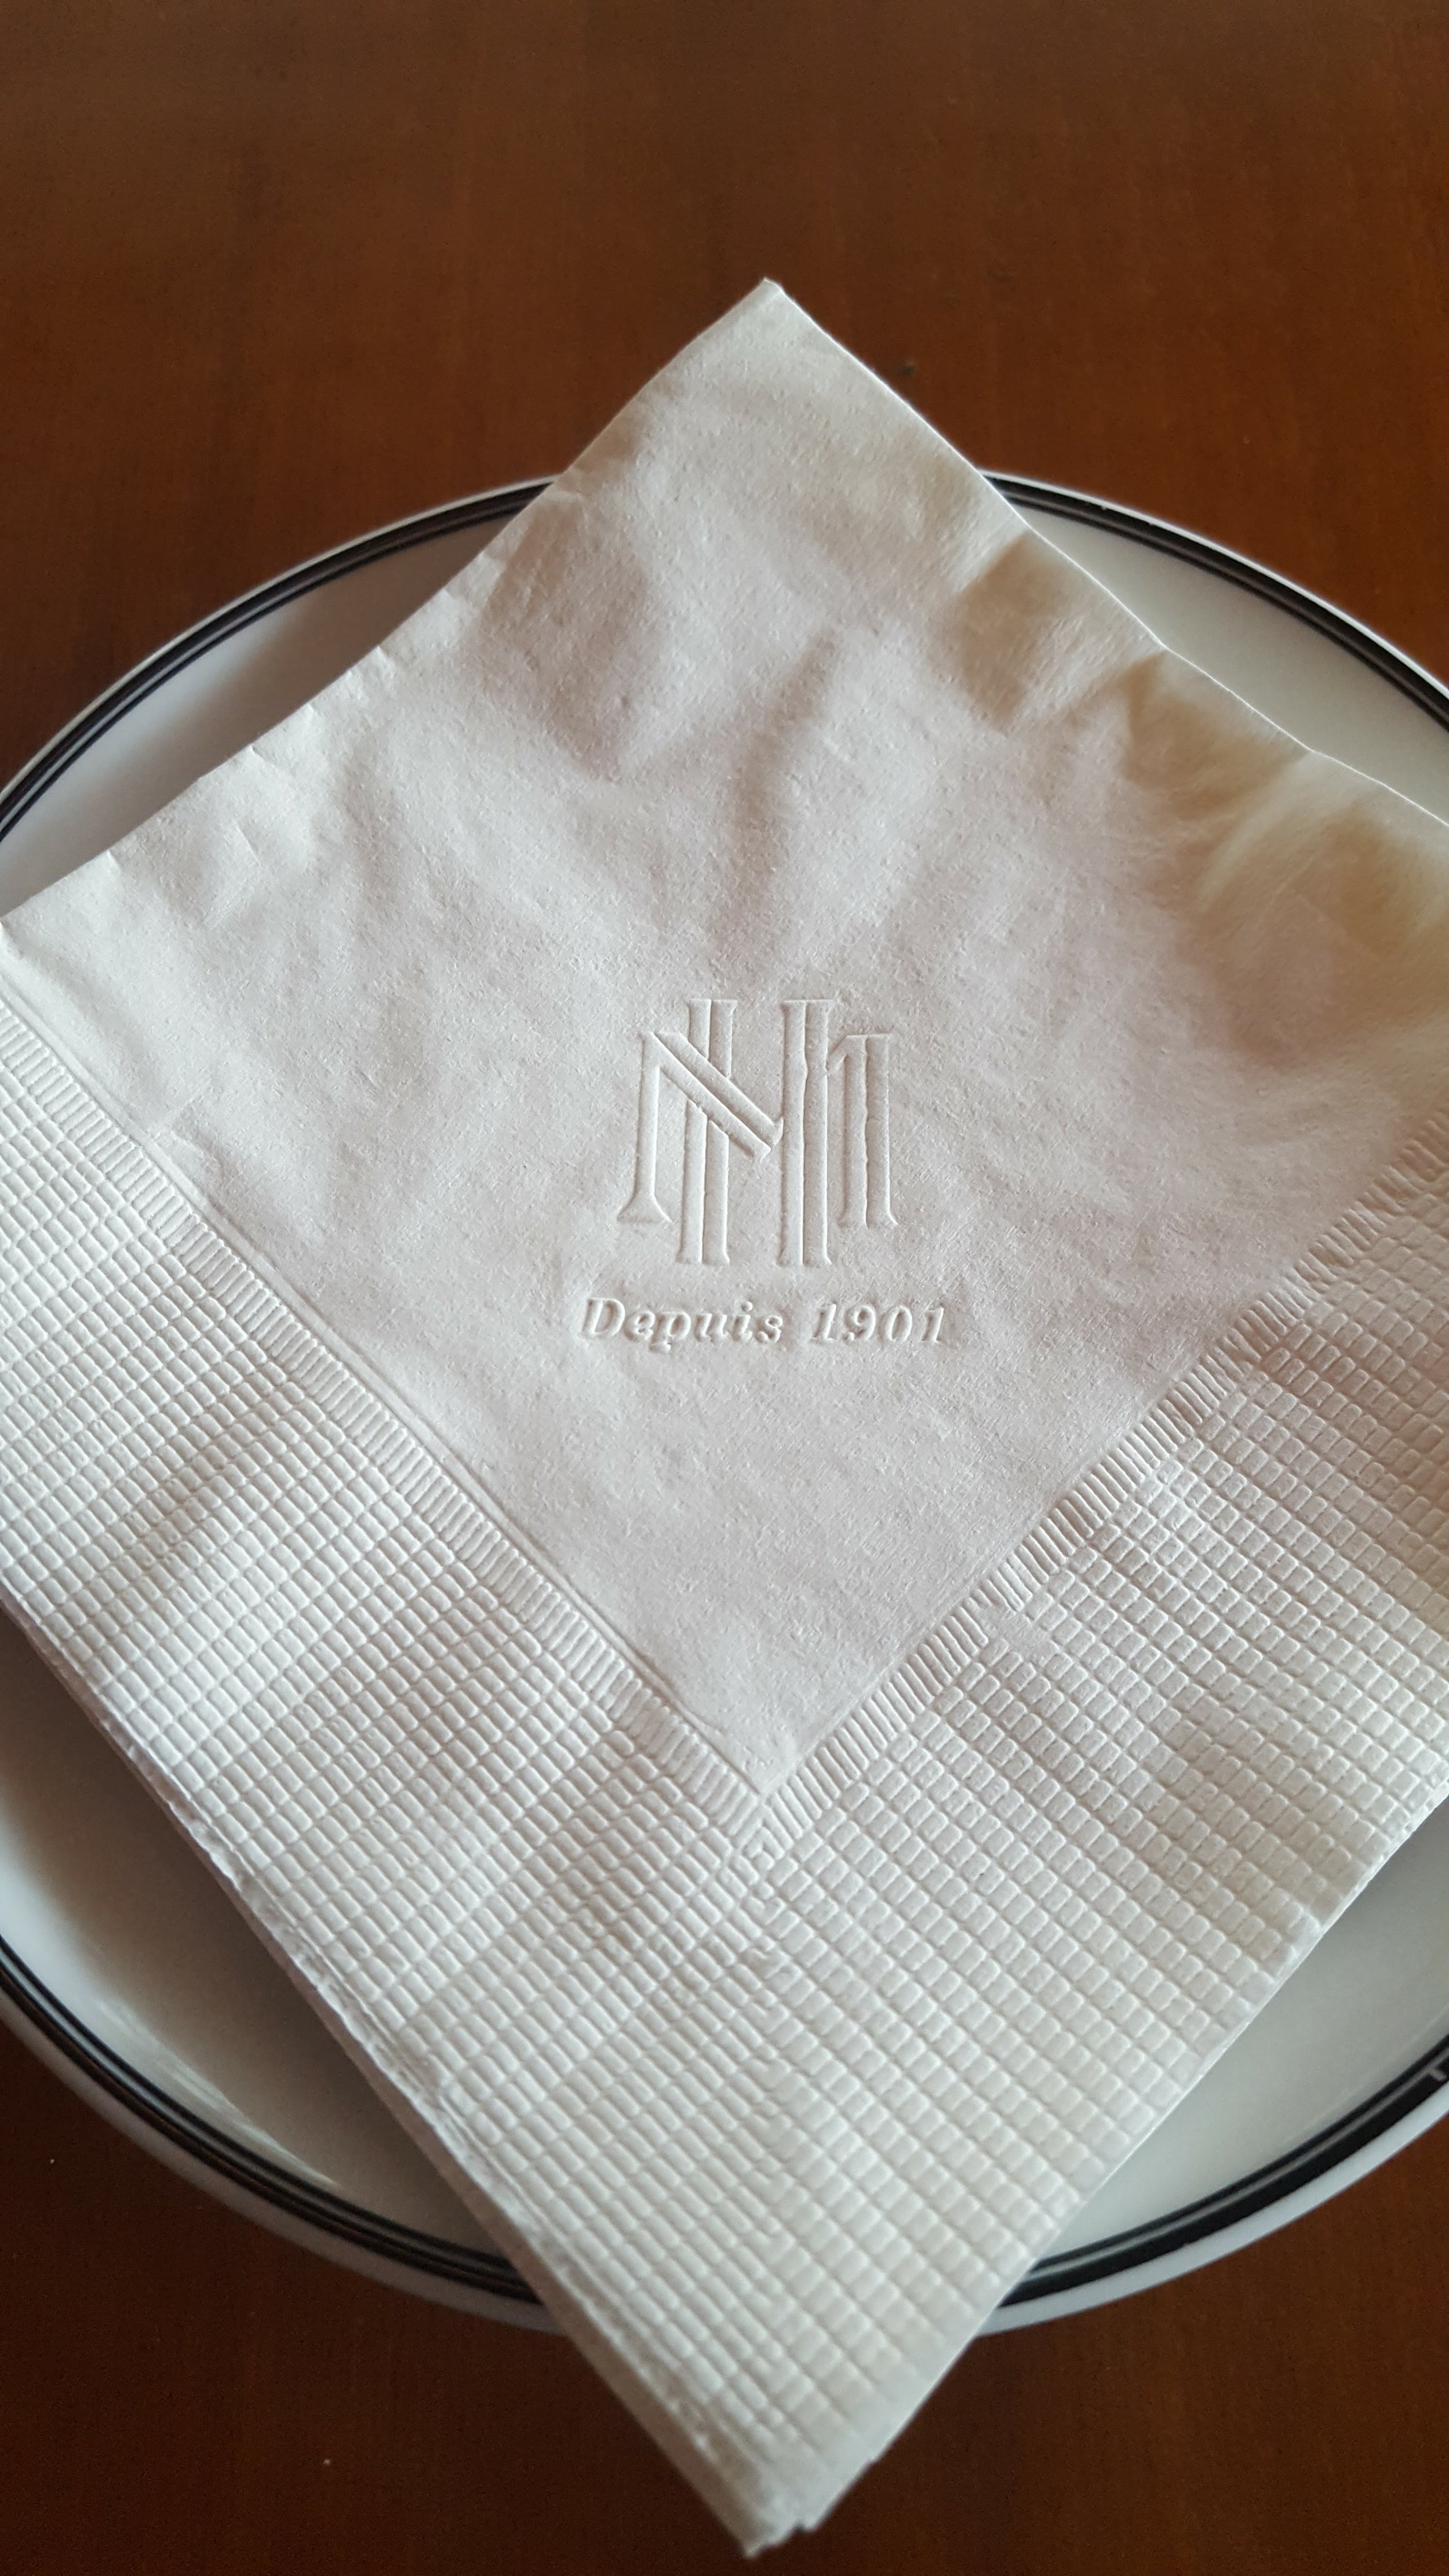 The Metrople. You know you've made it when you've got your own branded napkin